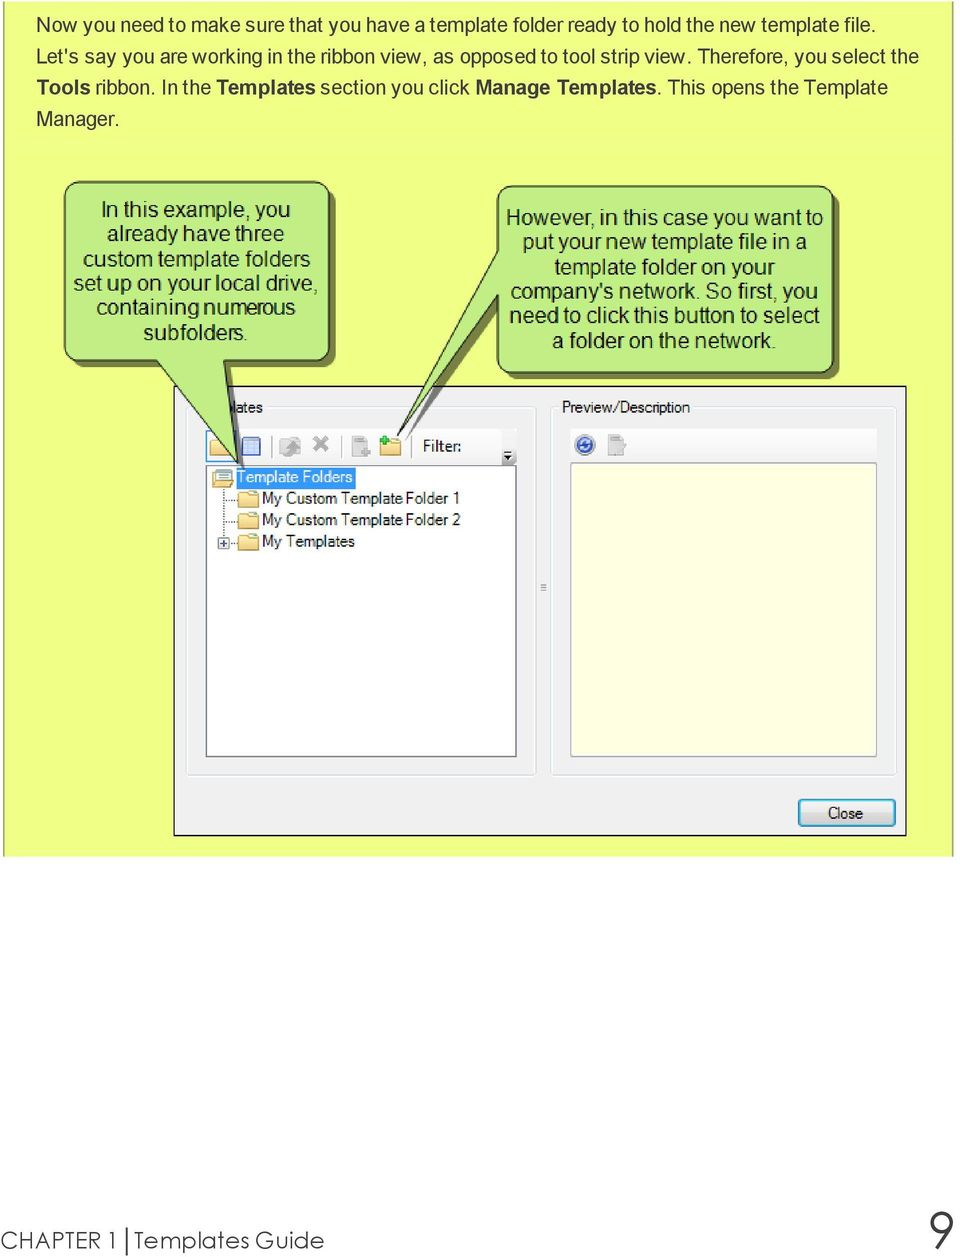 Let's say you are working in the ribbon view, as opposed to tool strip view.